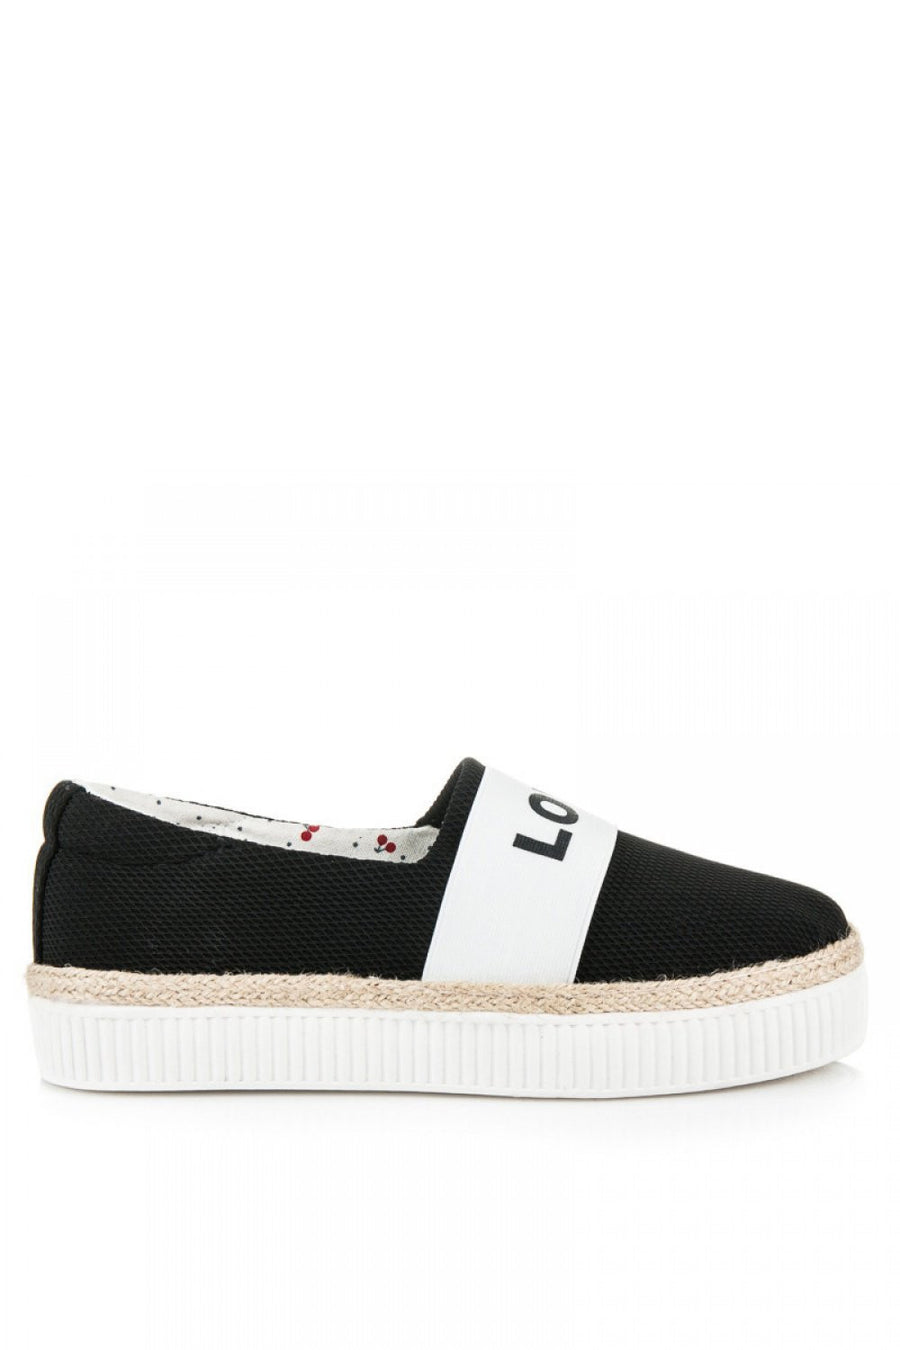 Espadrille 75662 Zoki-Women`s Athletic Shoes, Trainers, Sneakers-Zoki-Très Fancy